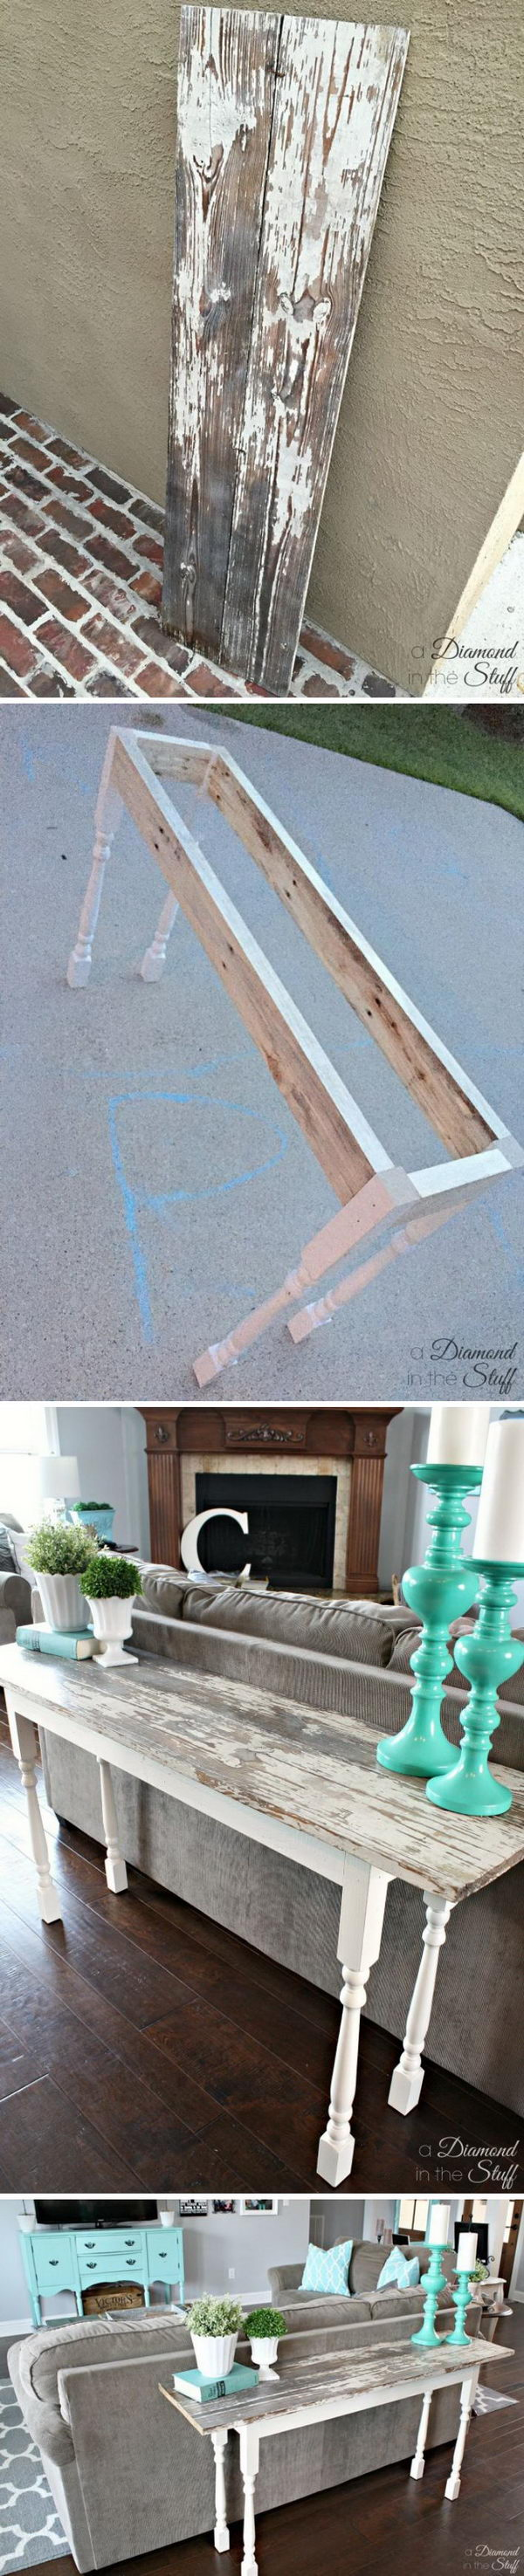 DIY Salvage Sofa Table.